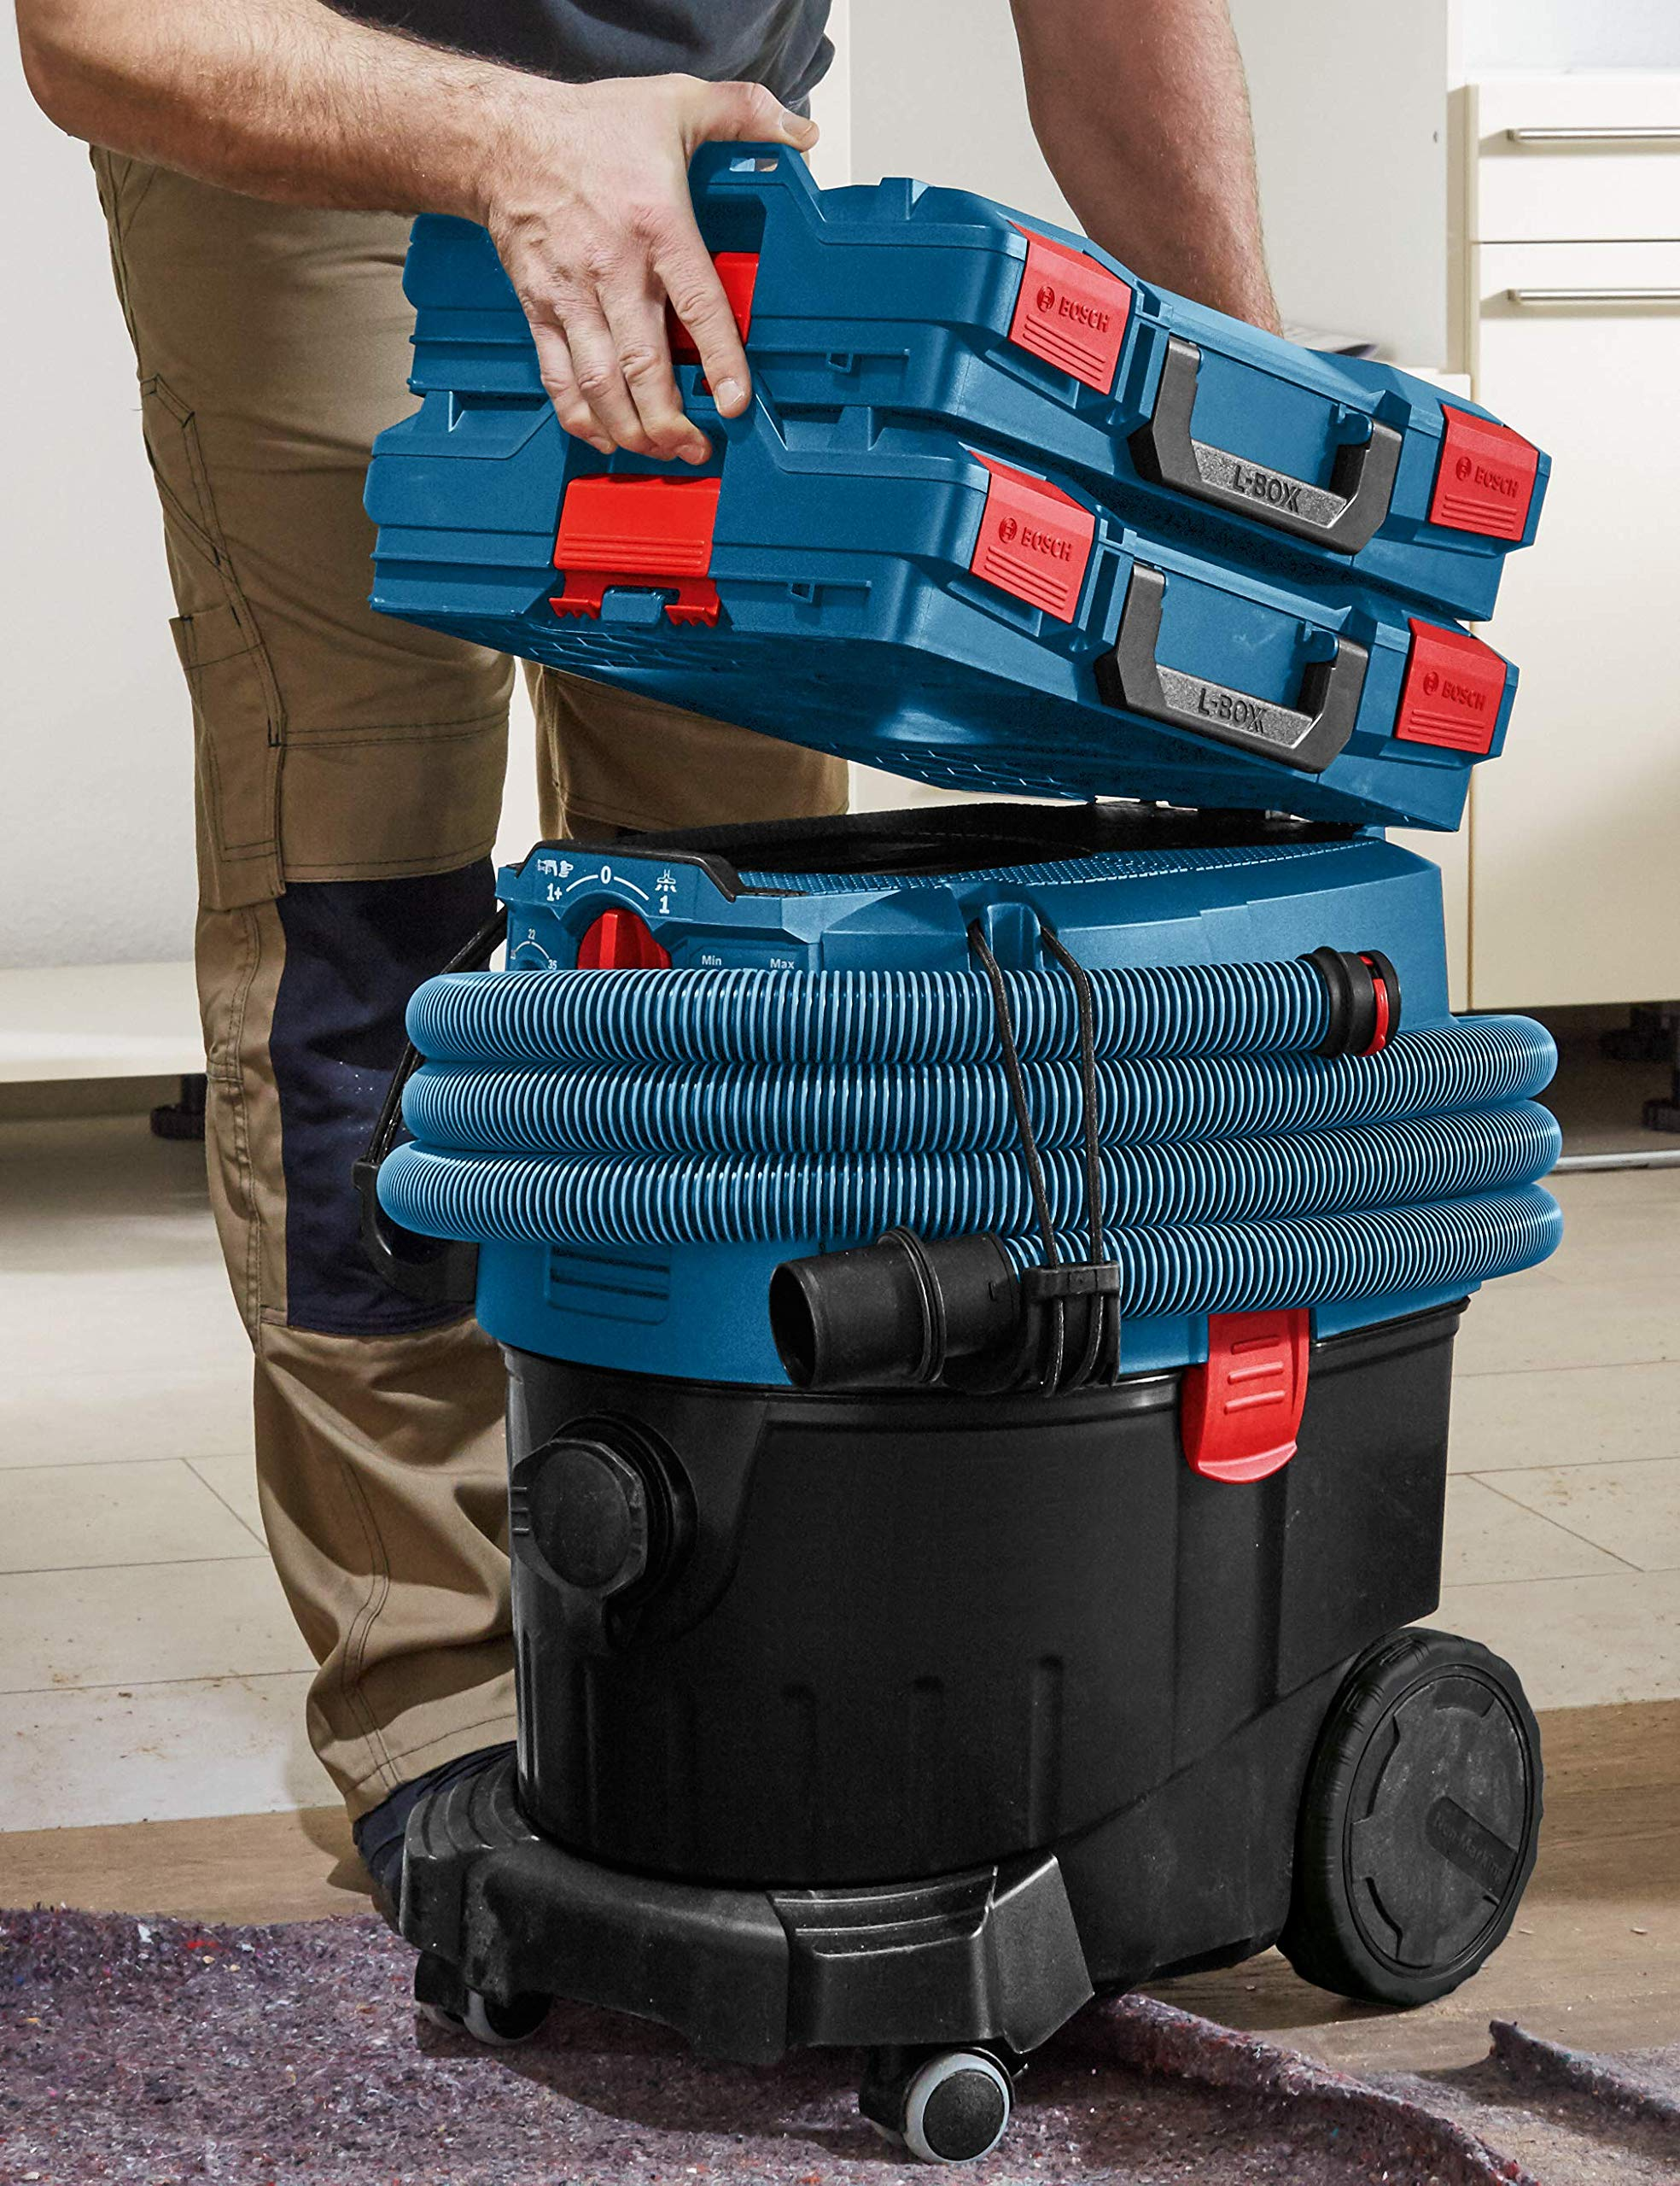 Bosch L-BOXX-1 4.5 In. x 14 In. x 17.5 In. Stackable Tool Storage Case by Bosch (Image #4)